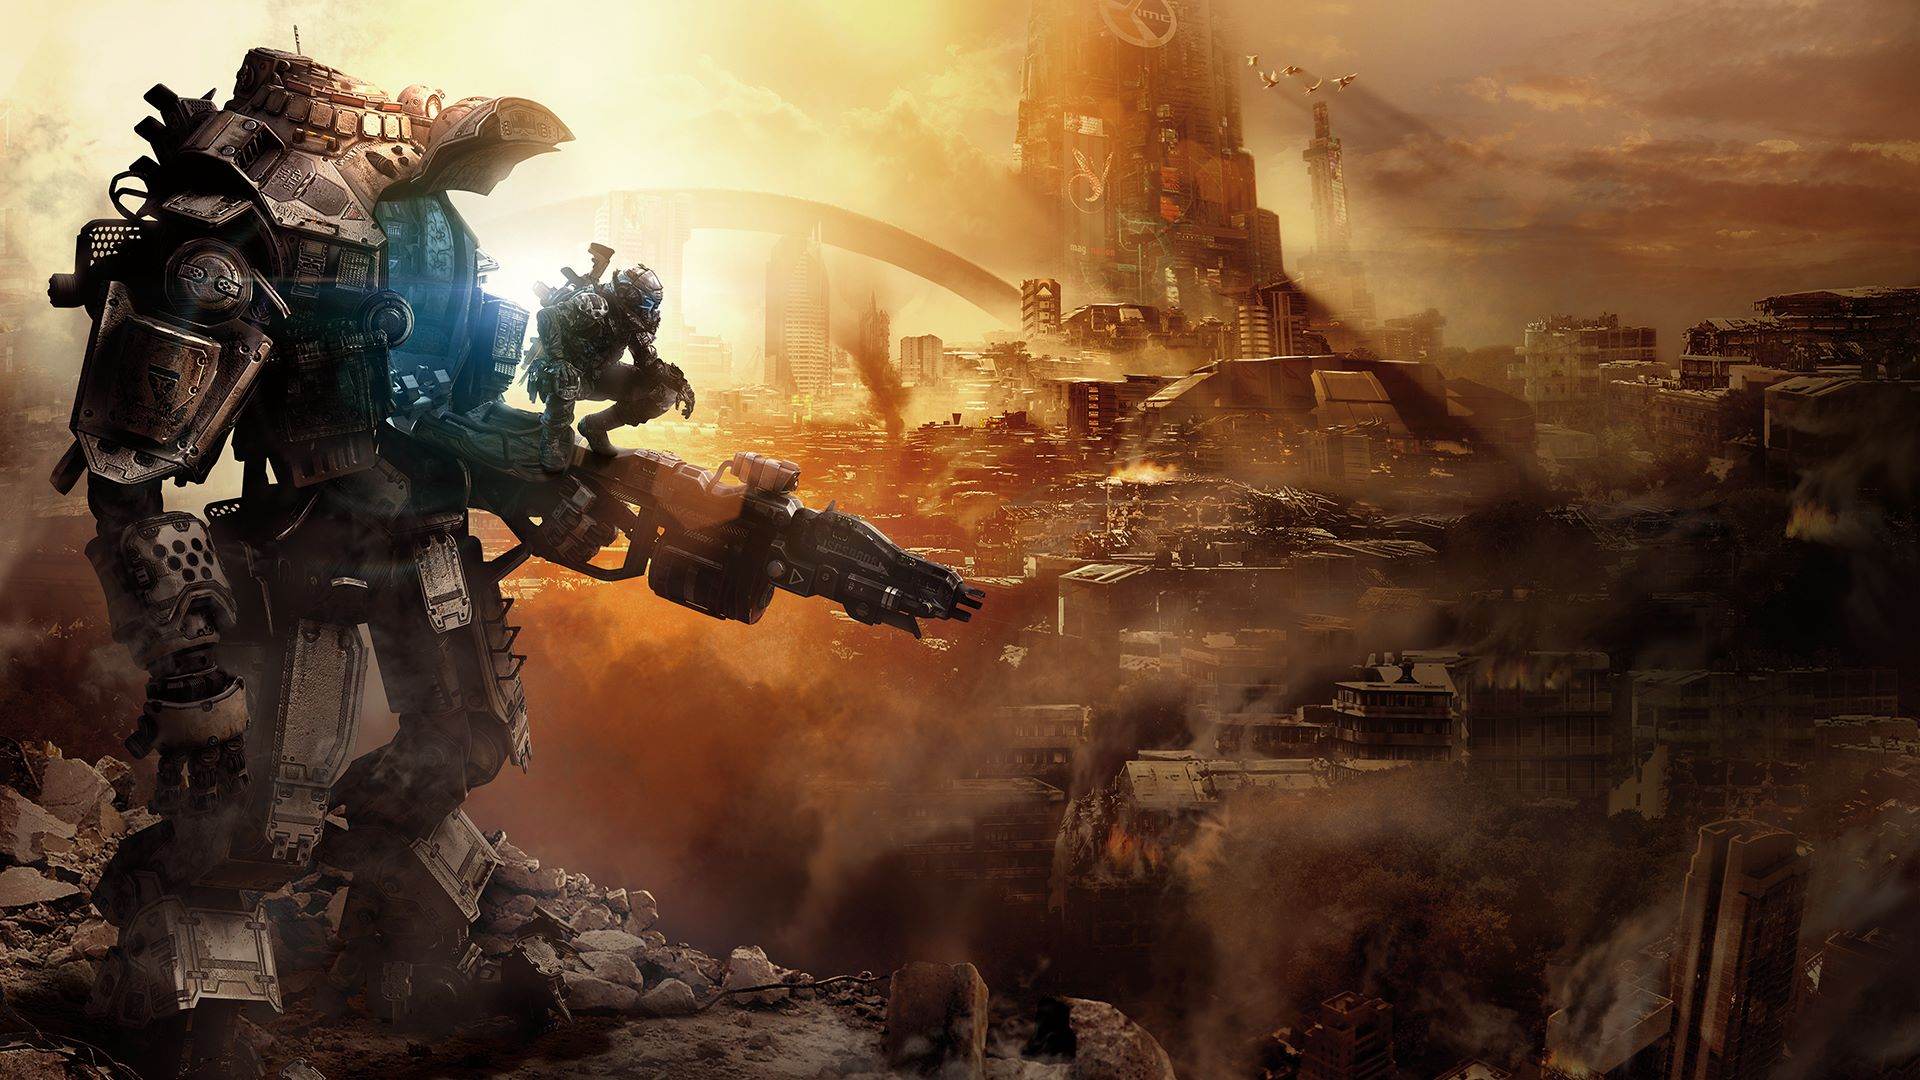 The FPS leaps forward… - Titanfall is the first FPS game of the new generation of console hardware to demonstrate the highs that can be reached, by innovating and escalating the concept of the genre.